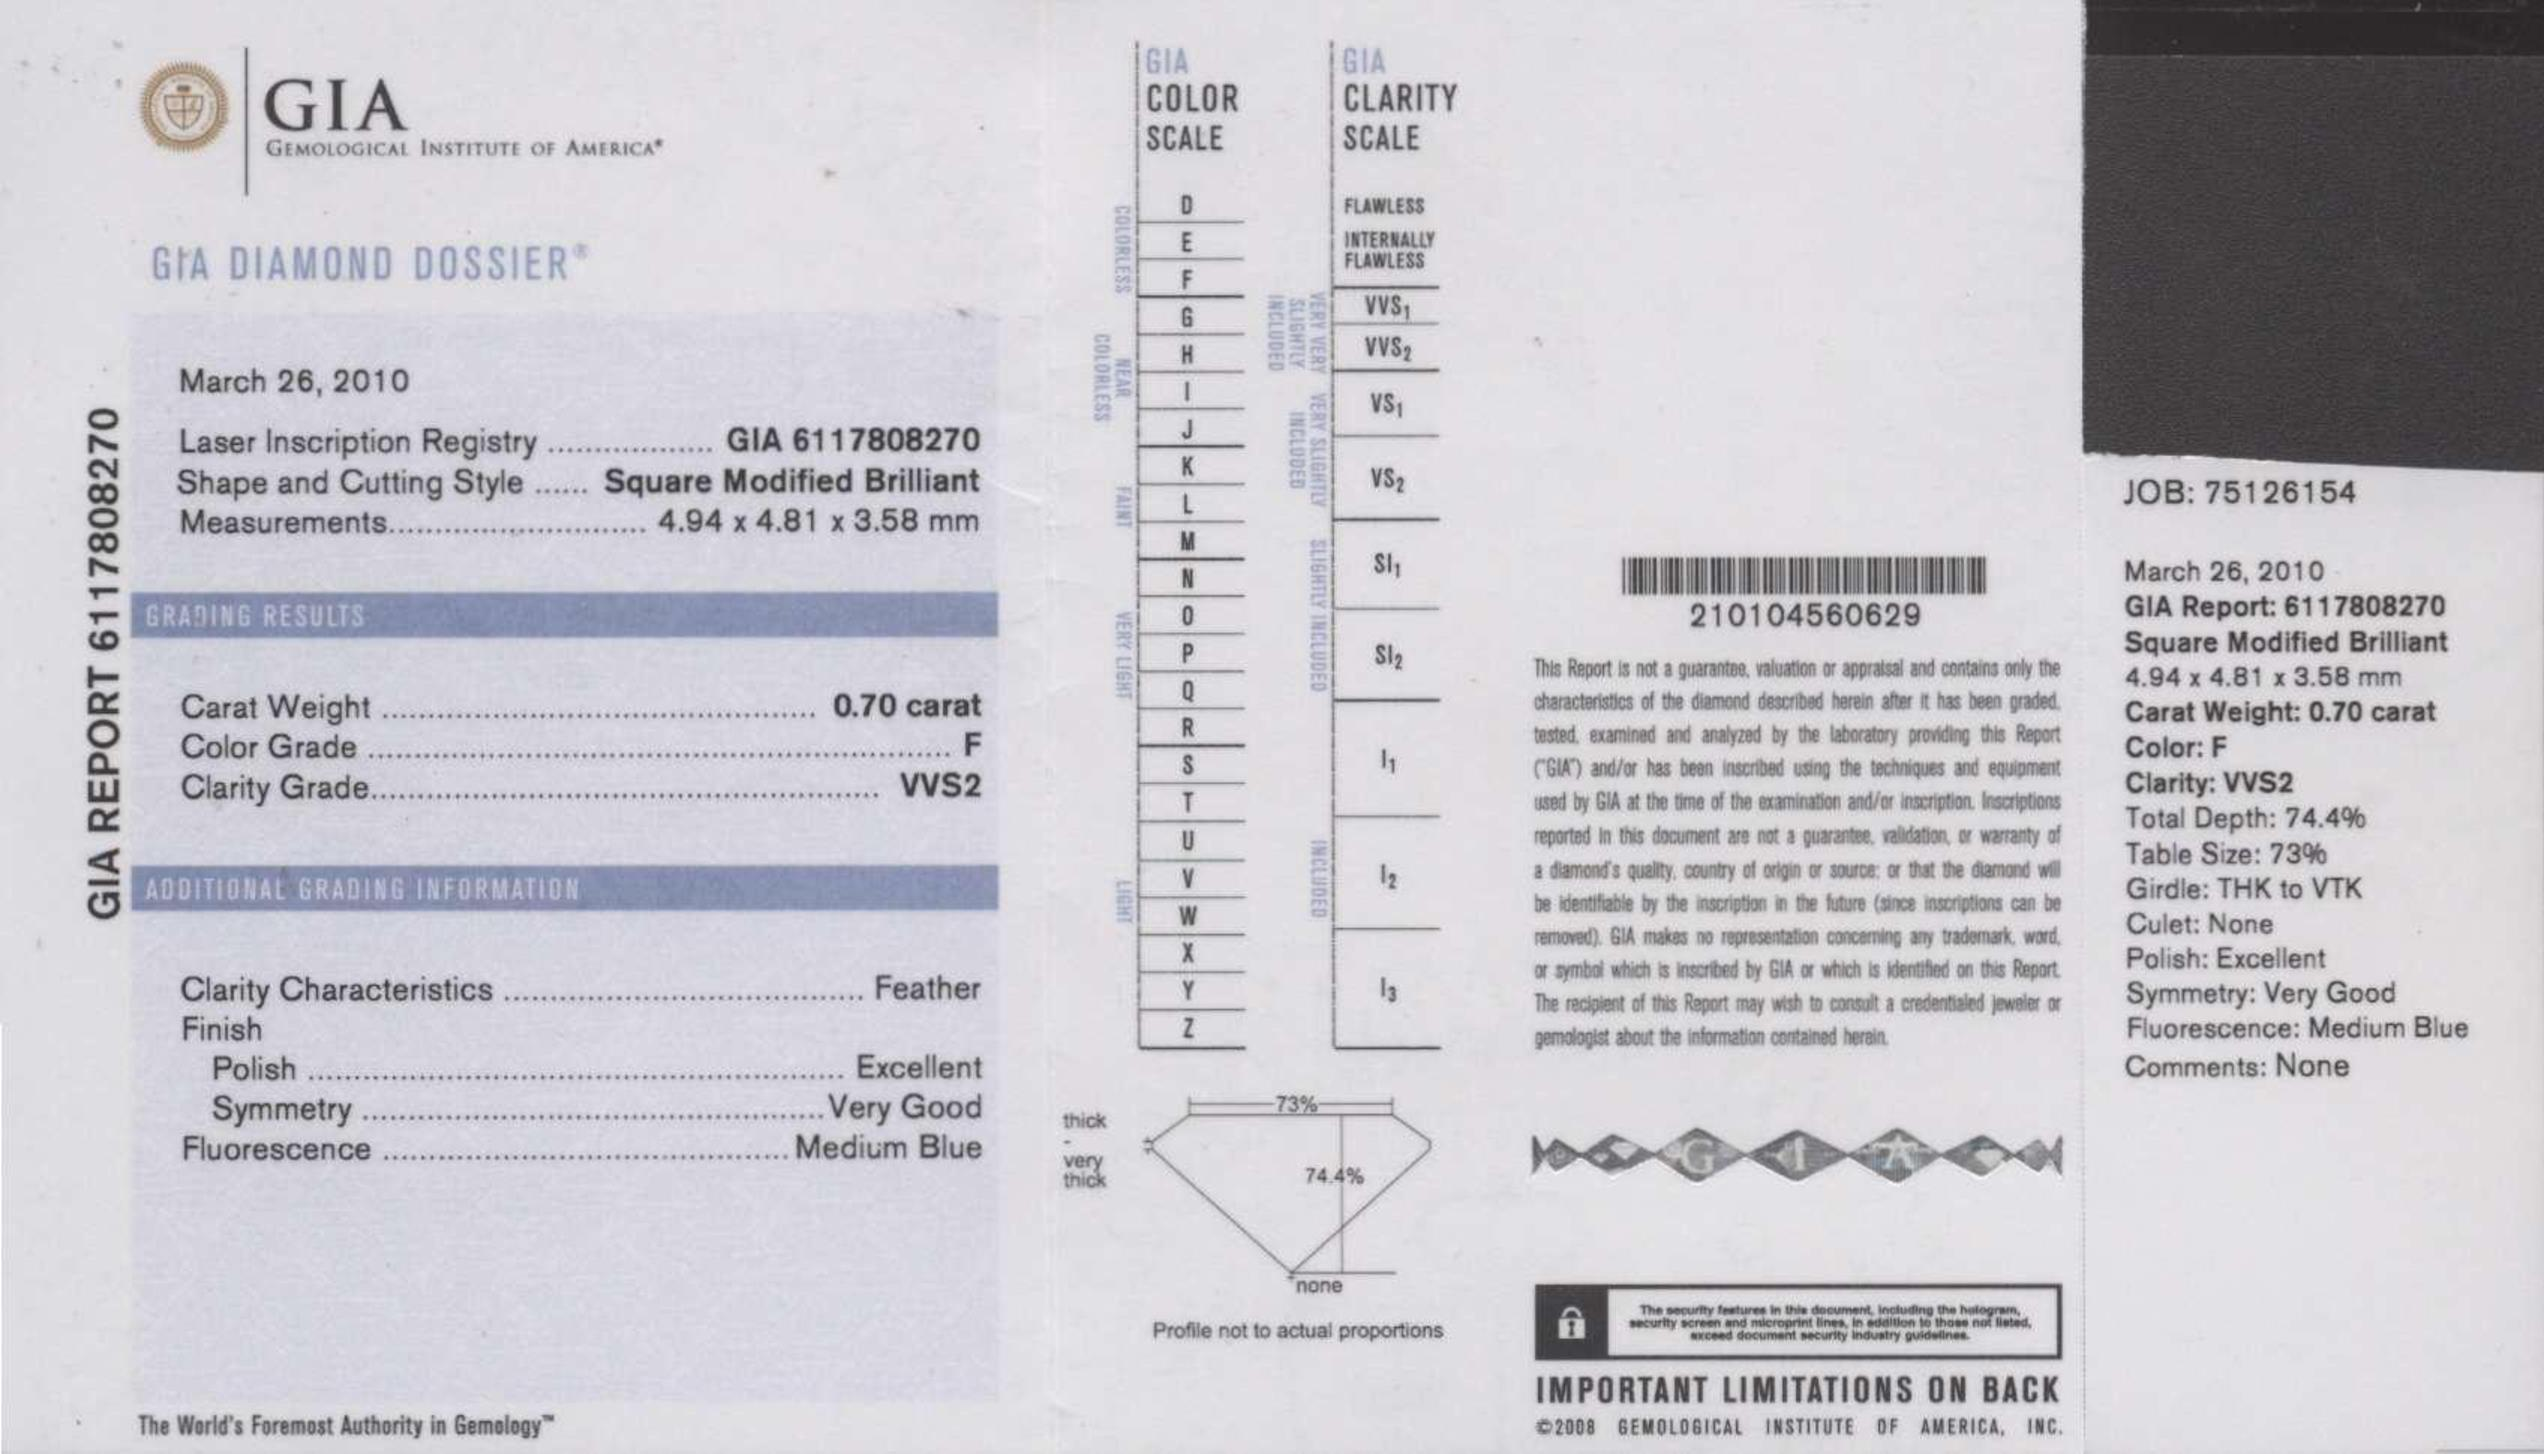 This is a 0.70 carat princess shape, F color, VVS2 clarity natural diamond accompanied by a GIA grading report.